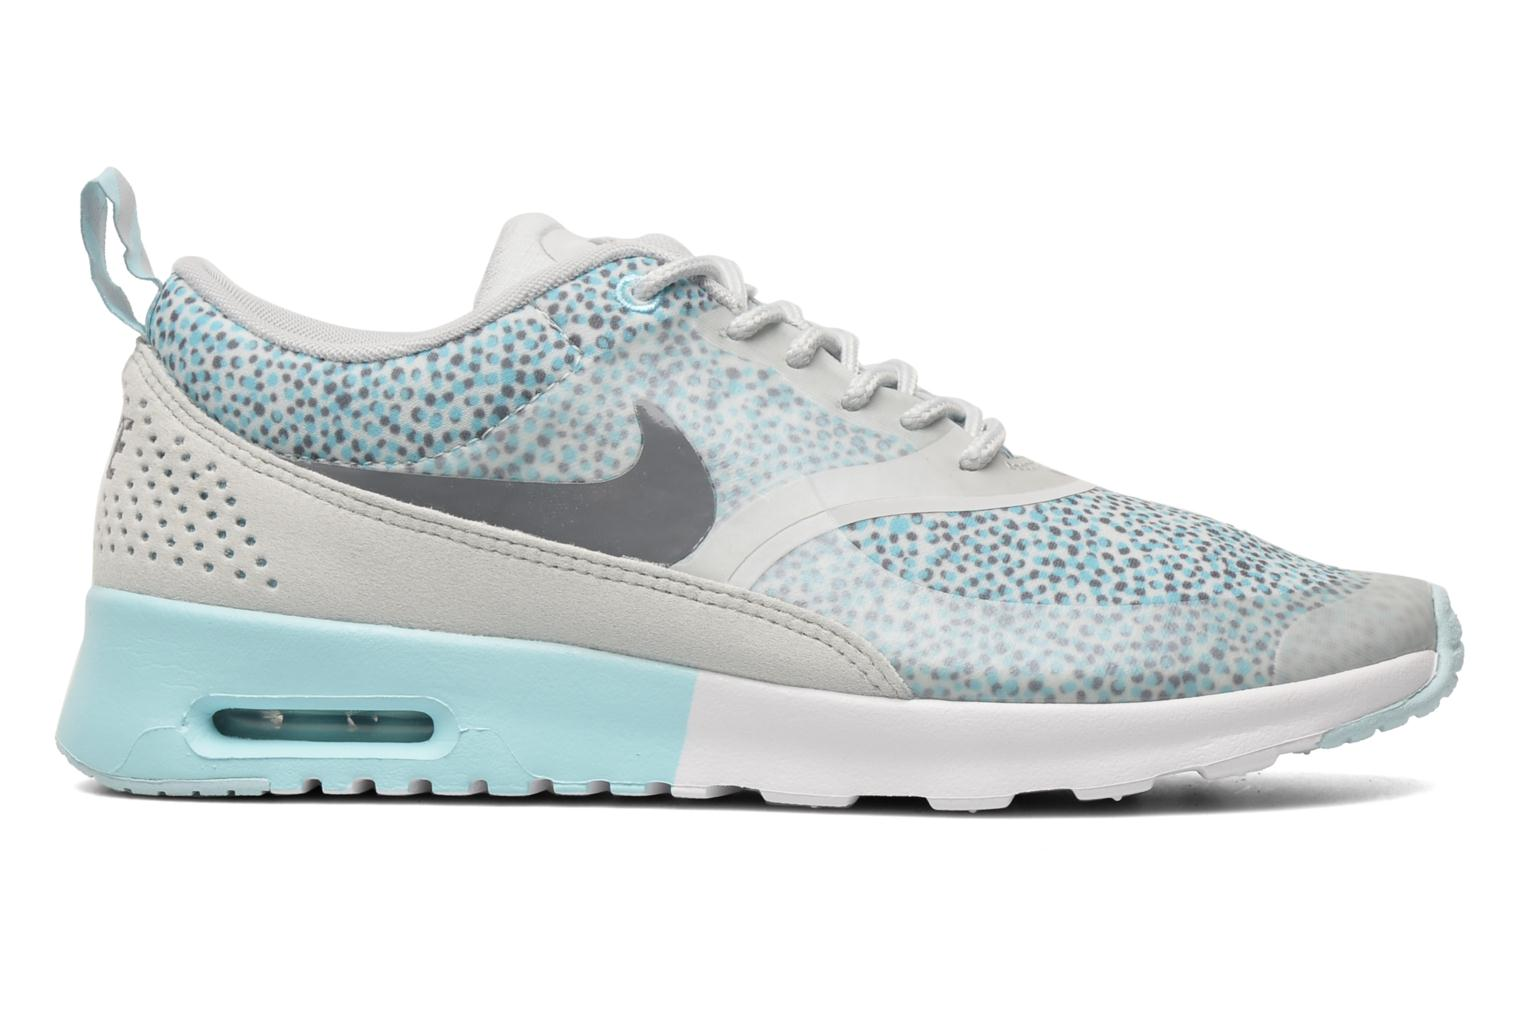 Wmns Nike Air Max Thea Print Lt Bs Grey/Cl Grey-Glcr Ic-White